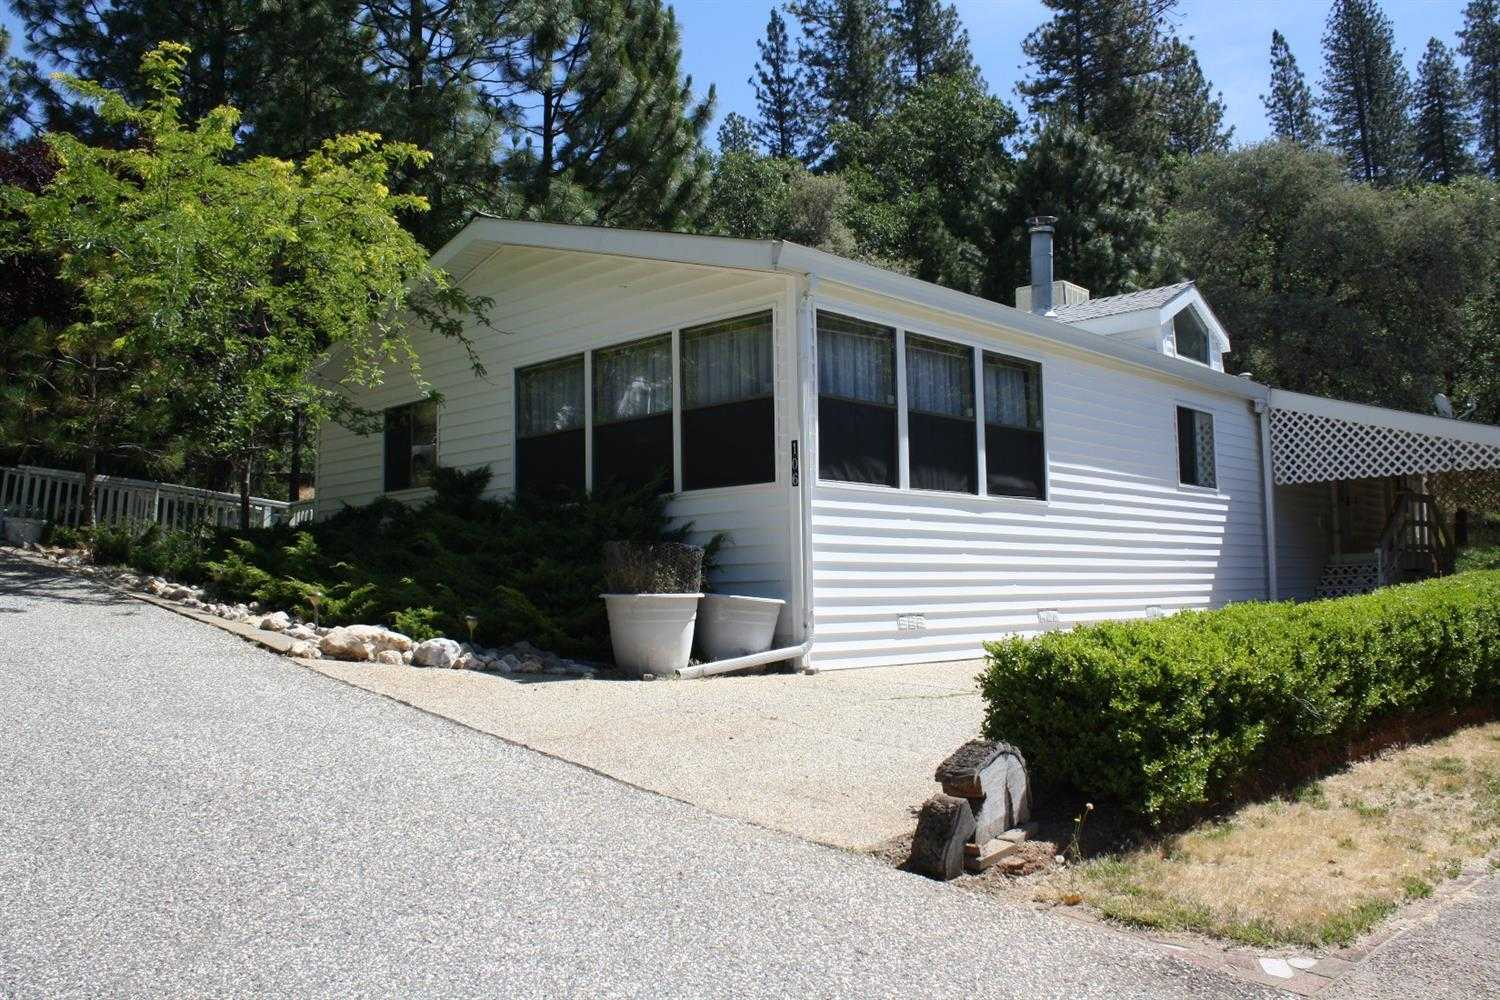 $59,900 - 3Br/2Ba -  for Sale in Foresthill